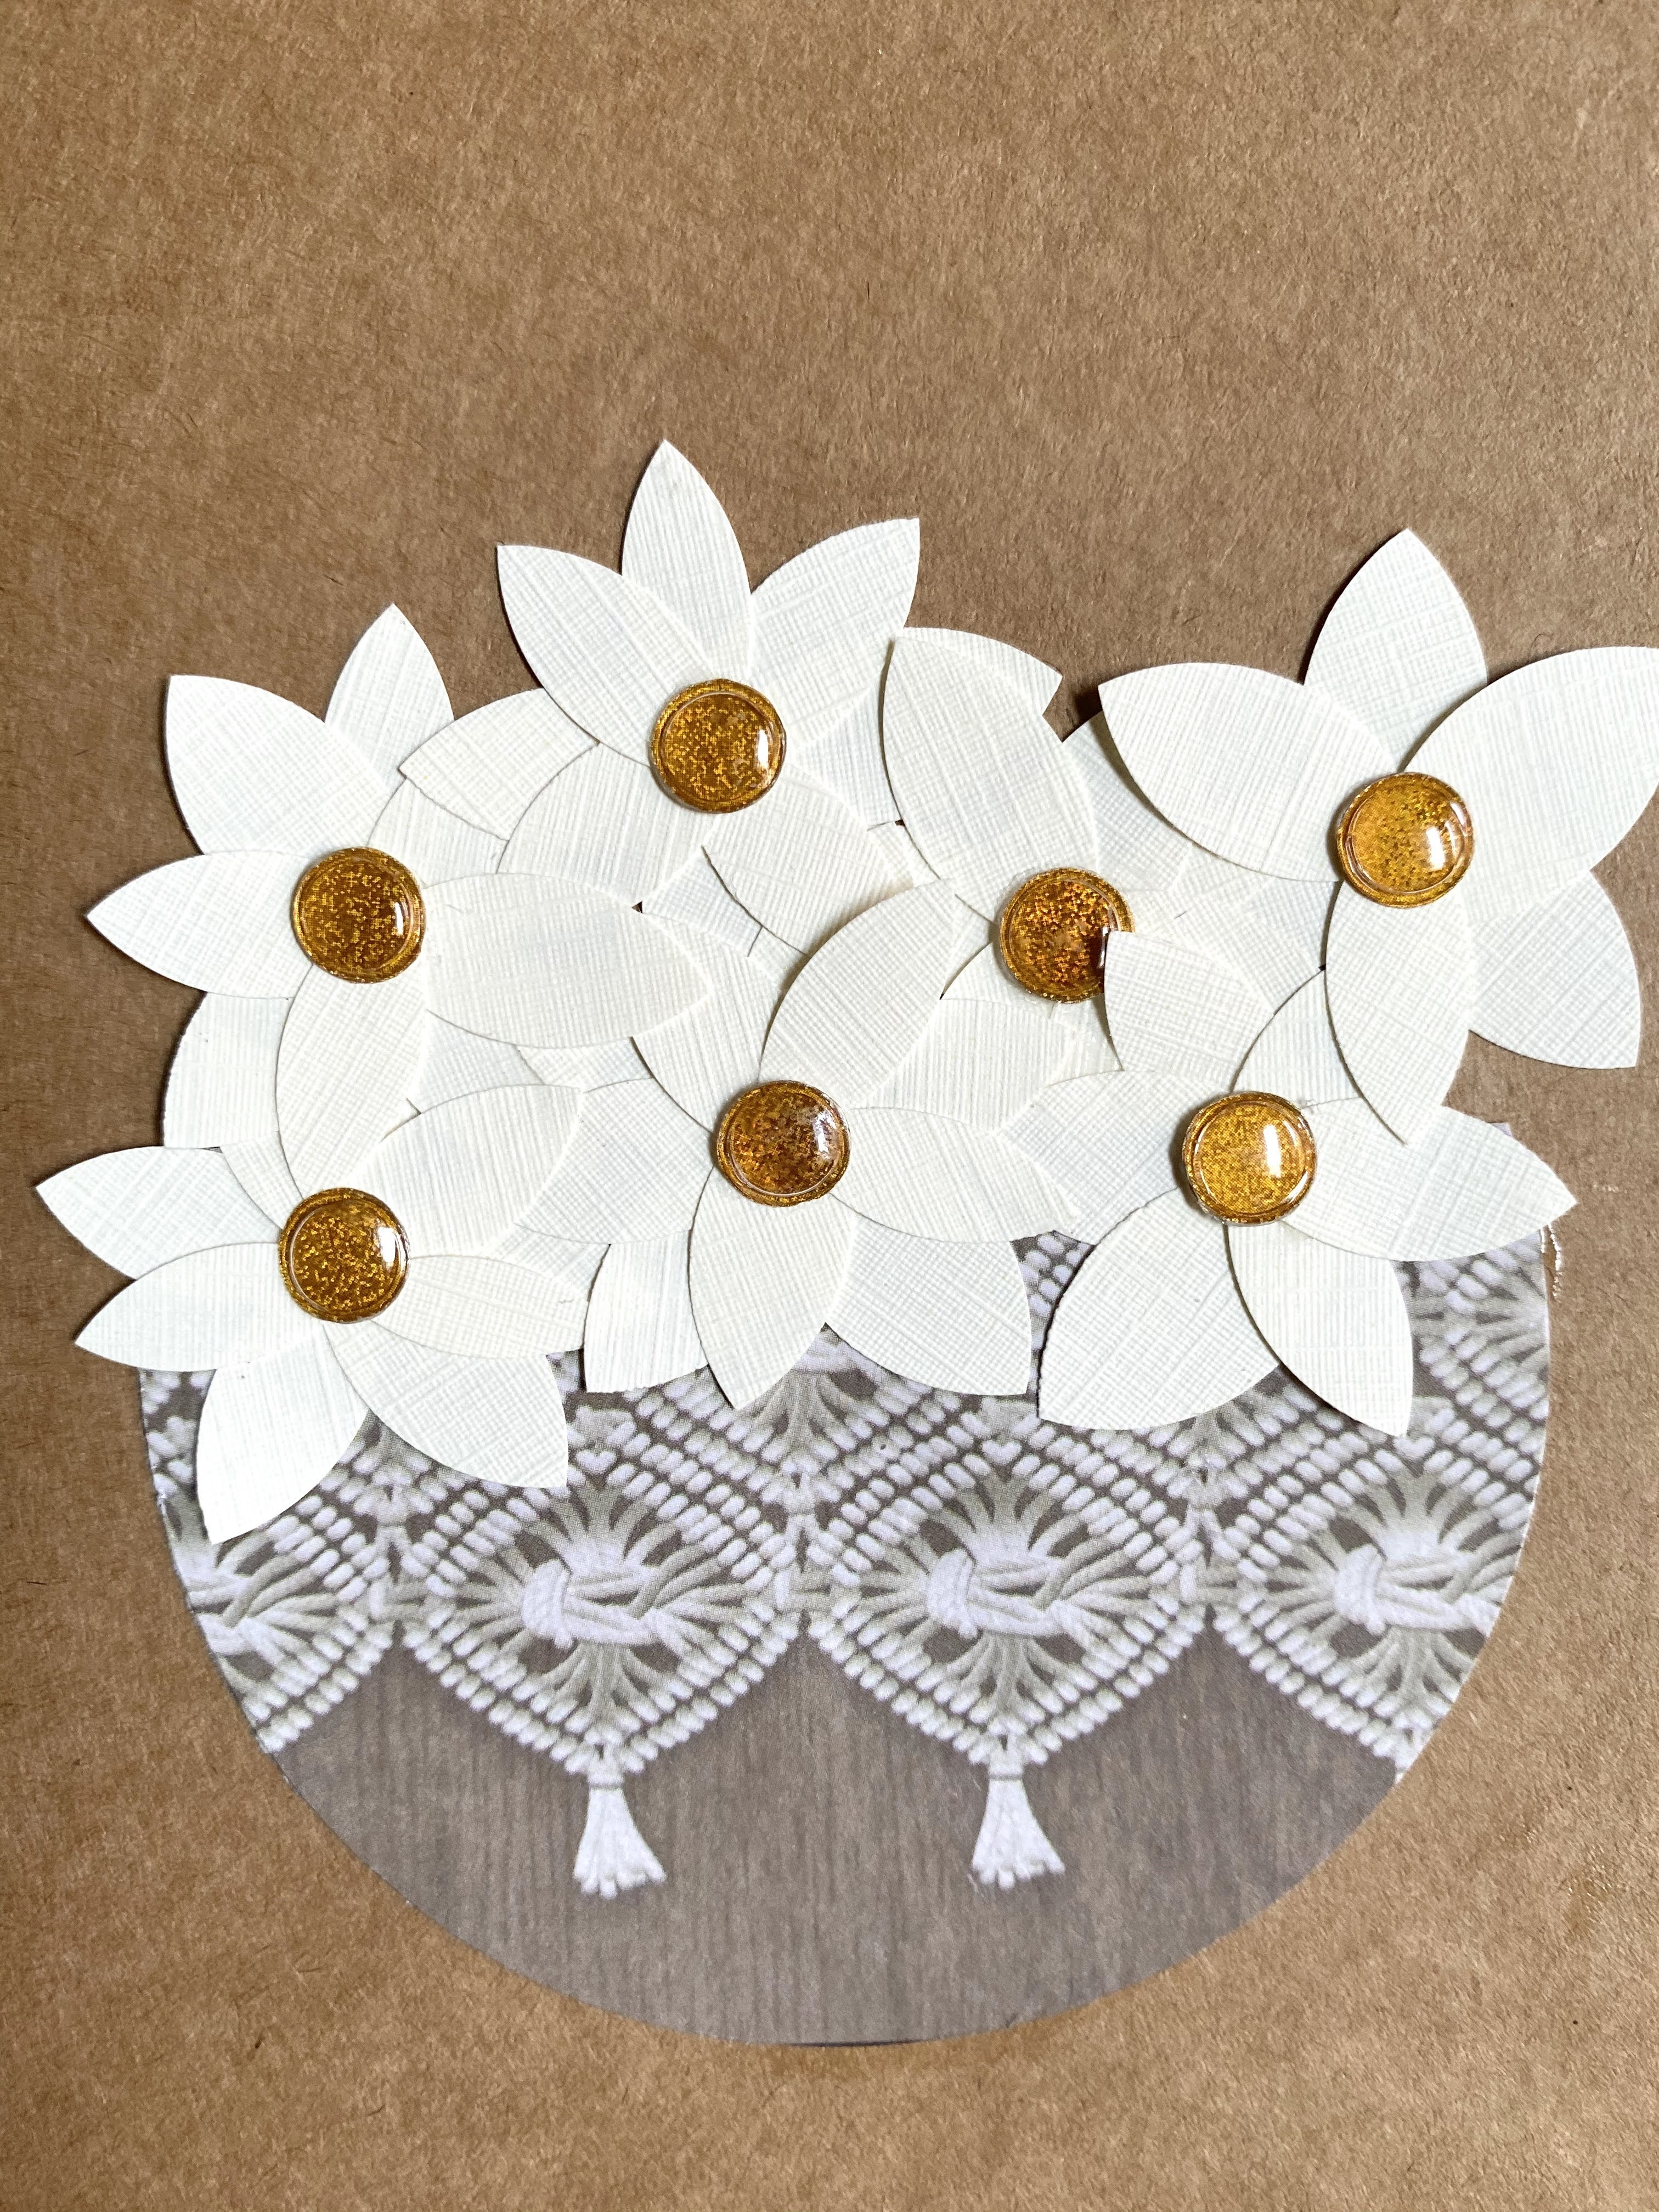 A homemade card made of scrapbook paper and resume paper to form a group of magnolias in a flower basket.  A simple and earthy homemade card.